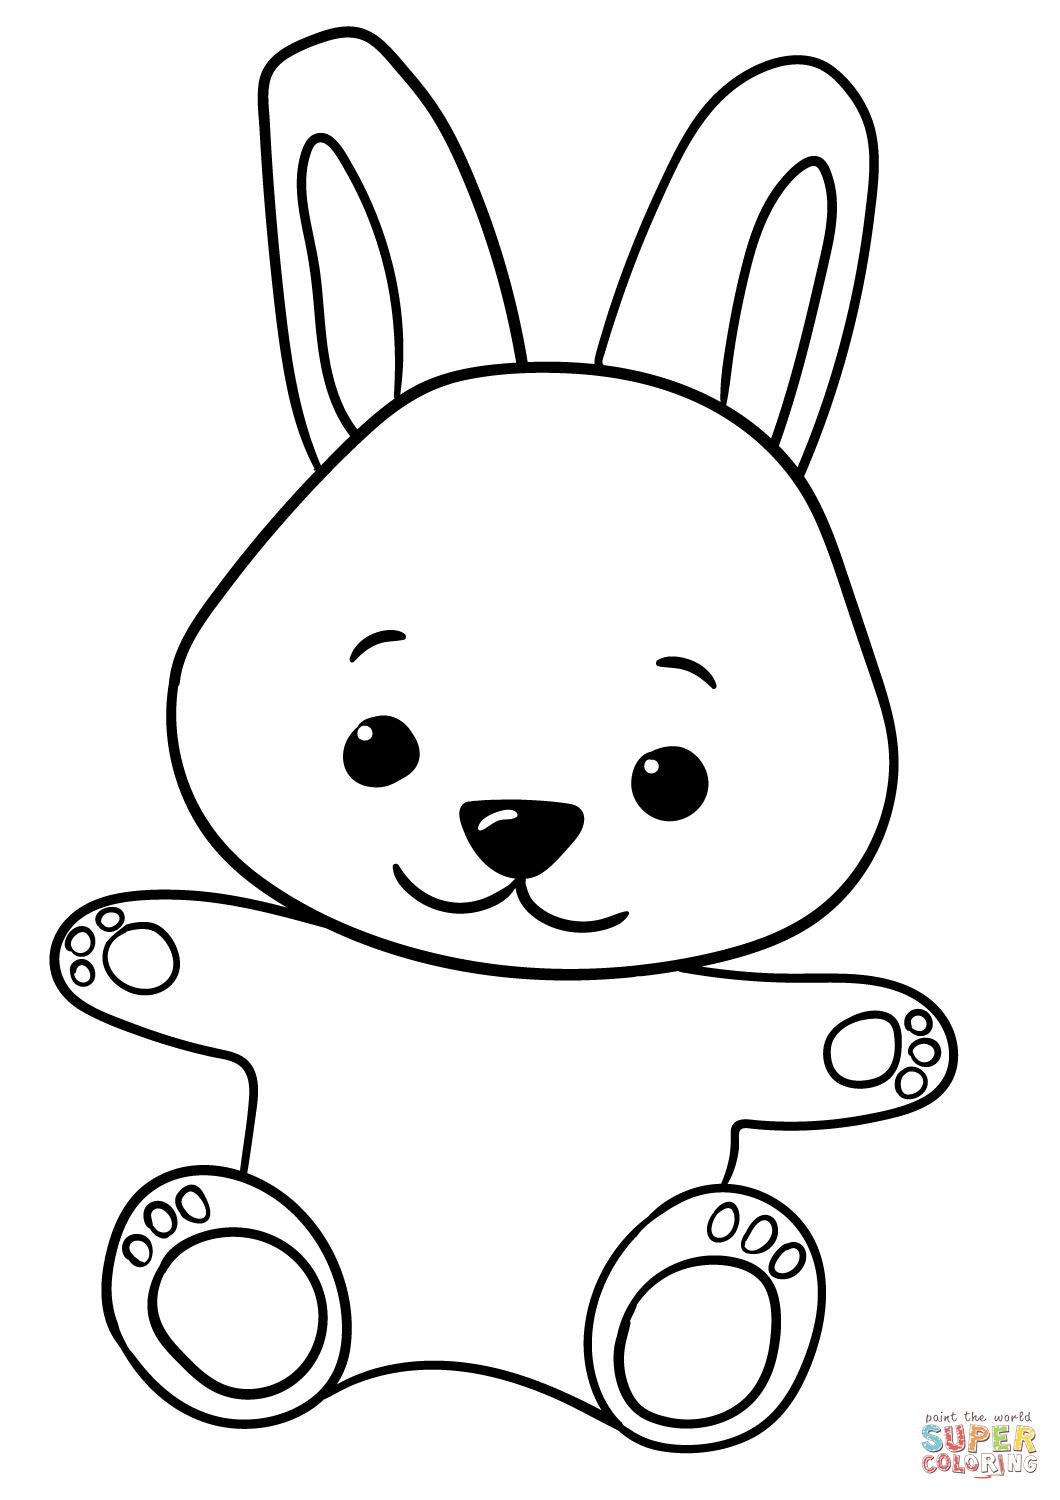 chibi bunny coloring pages cute cartoon bunny coloring page free printable coloring coloring pages chibi bunny